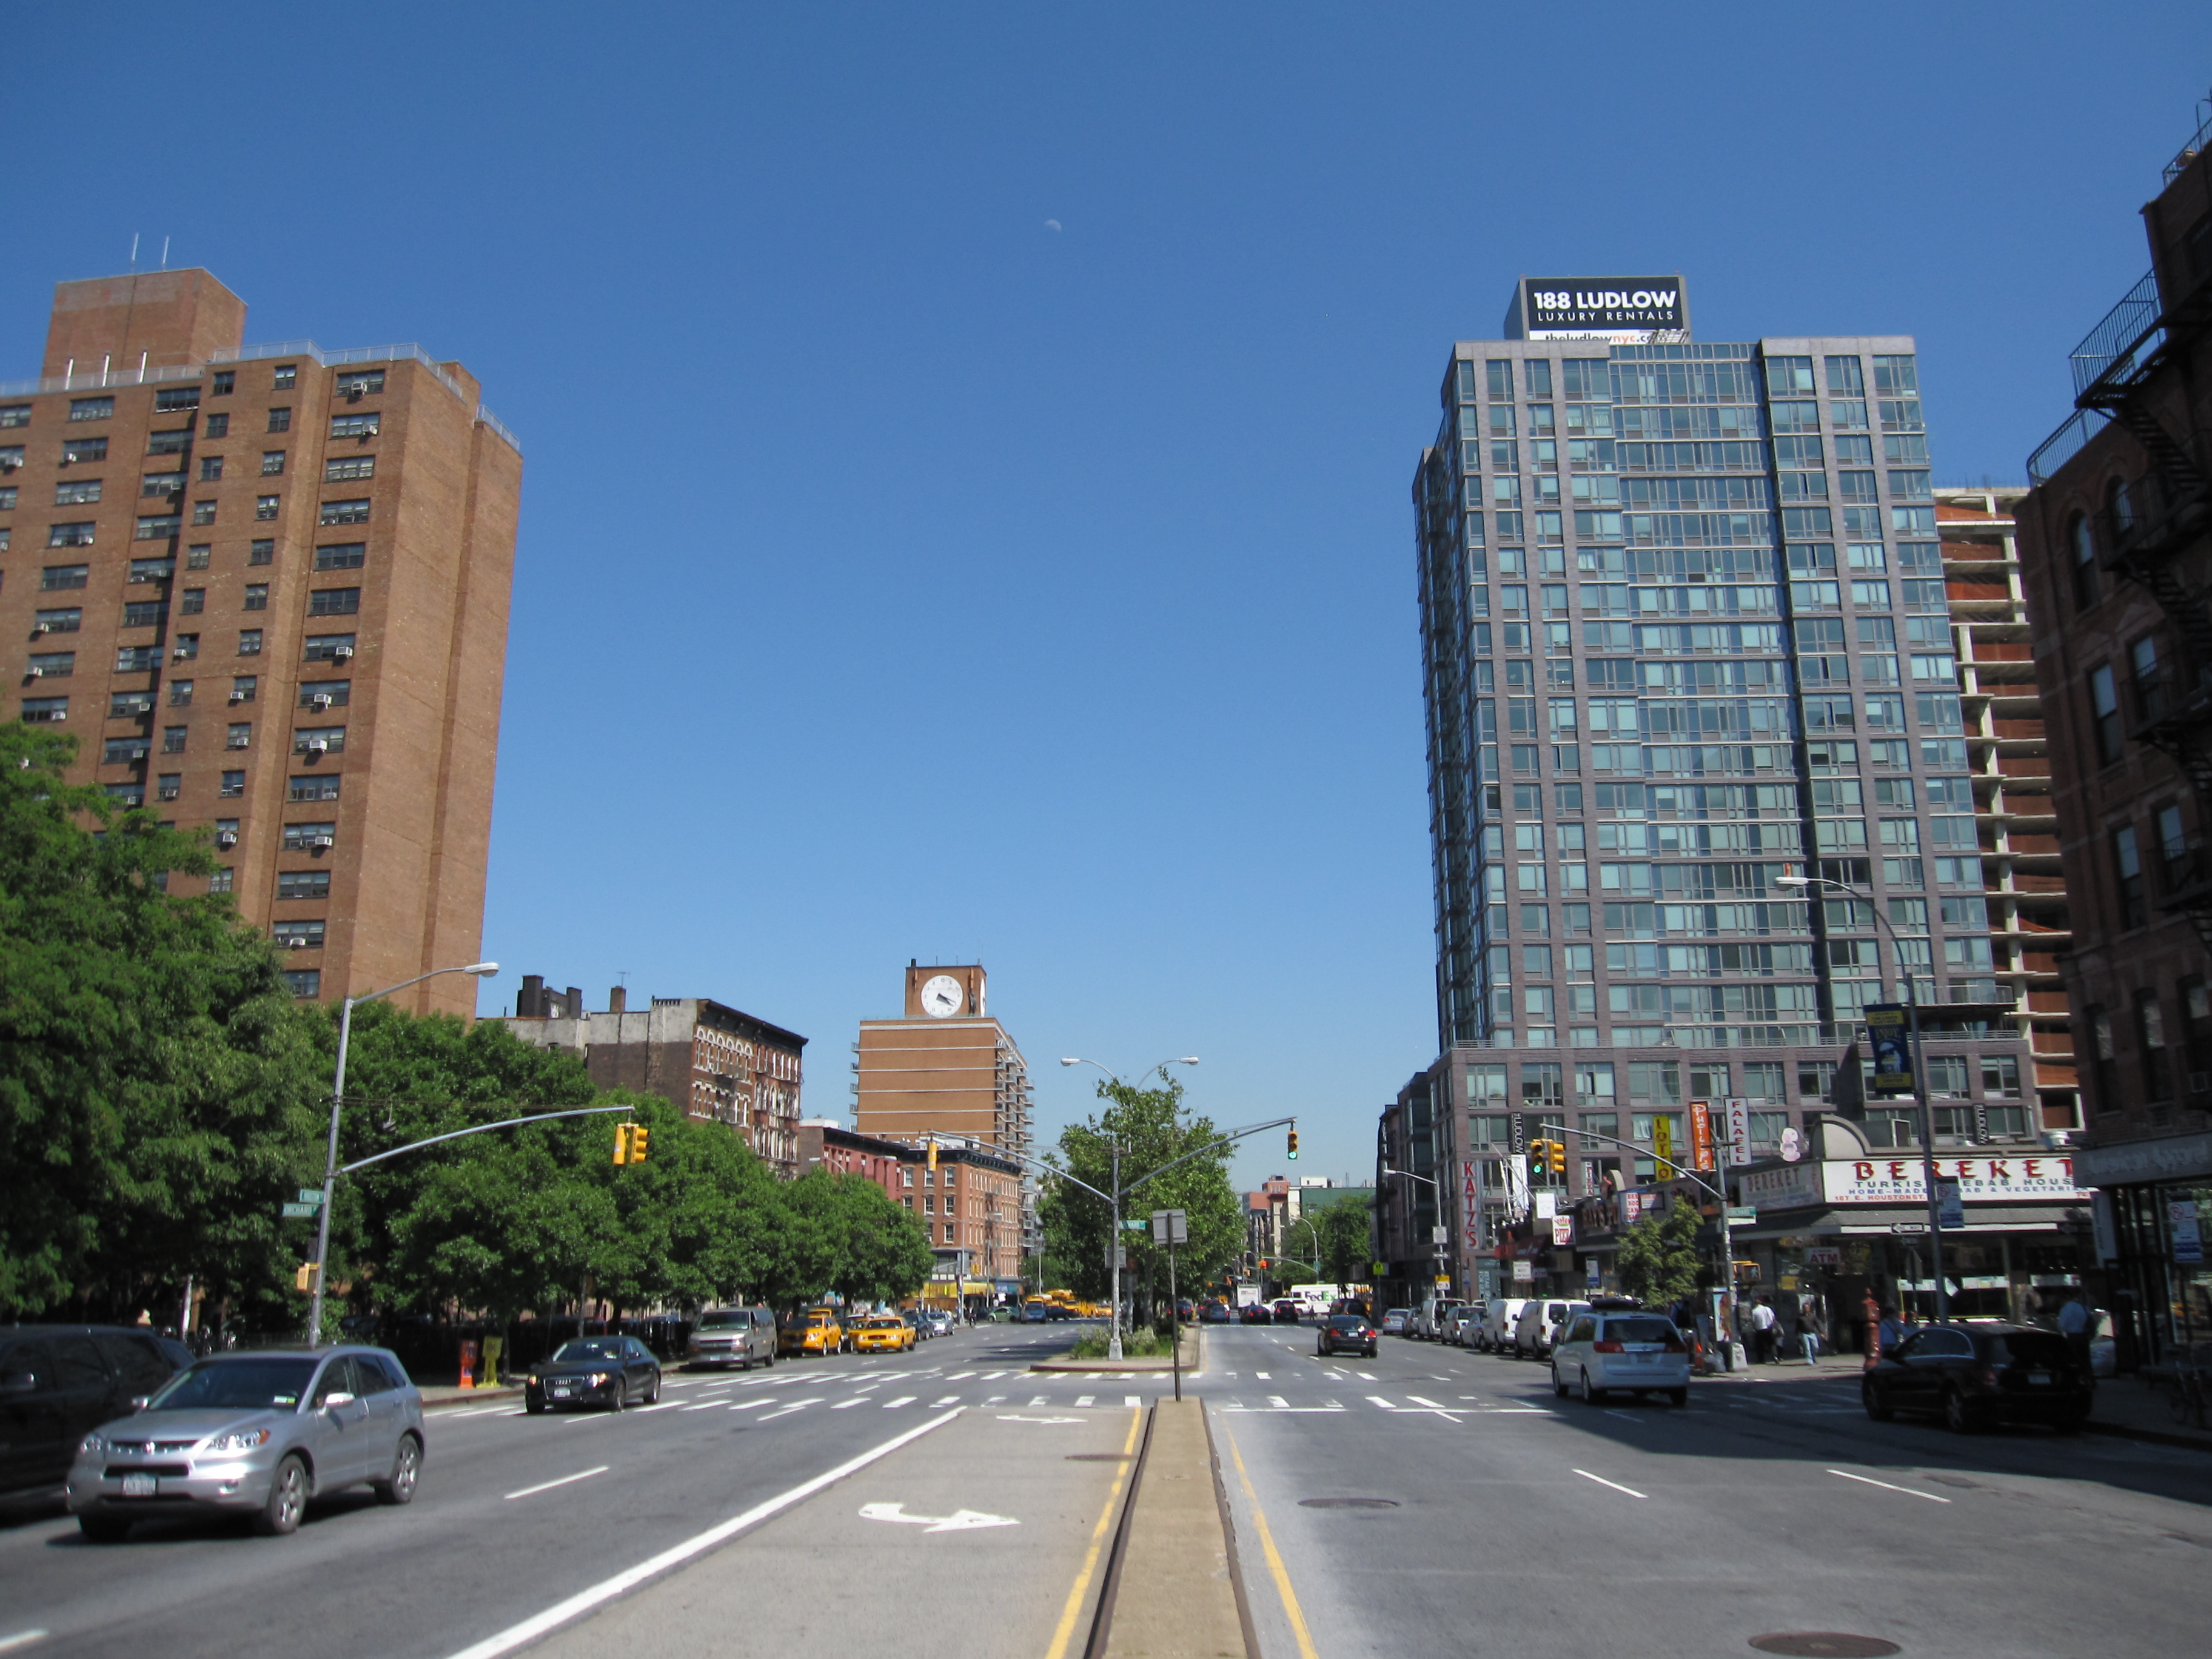 East Houston Street